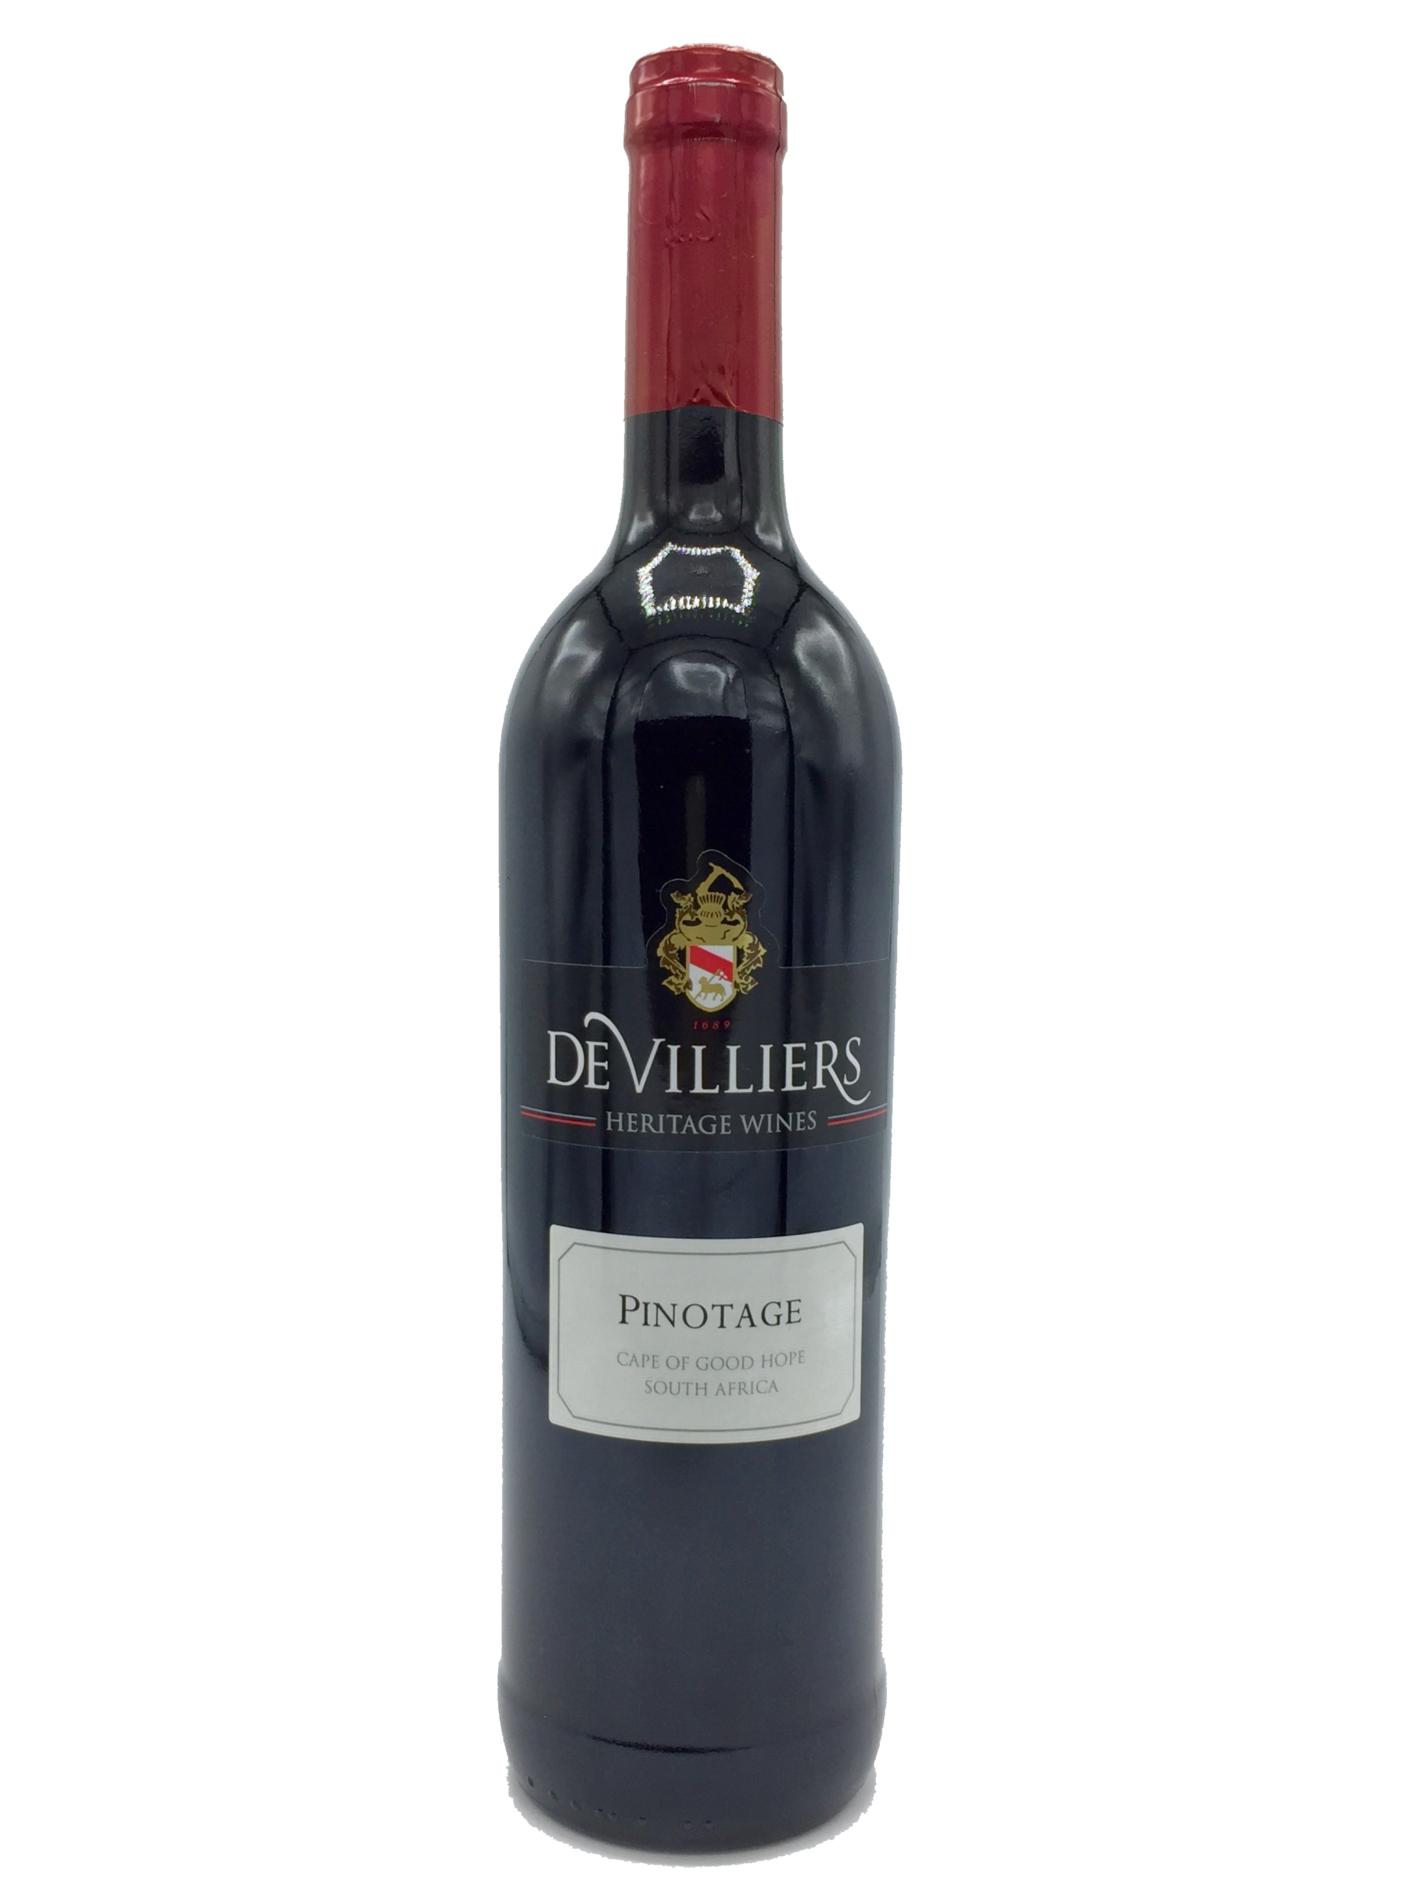 Devilliers Pinotage